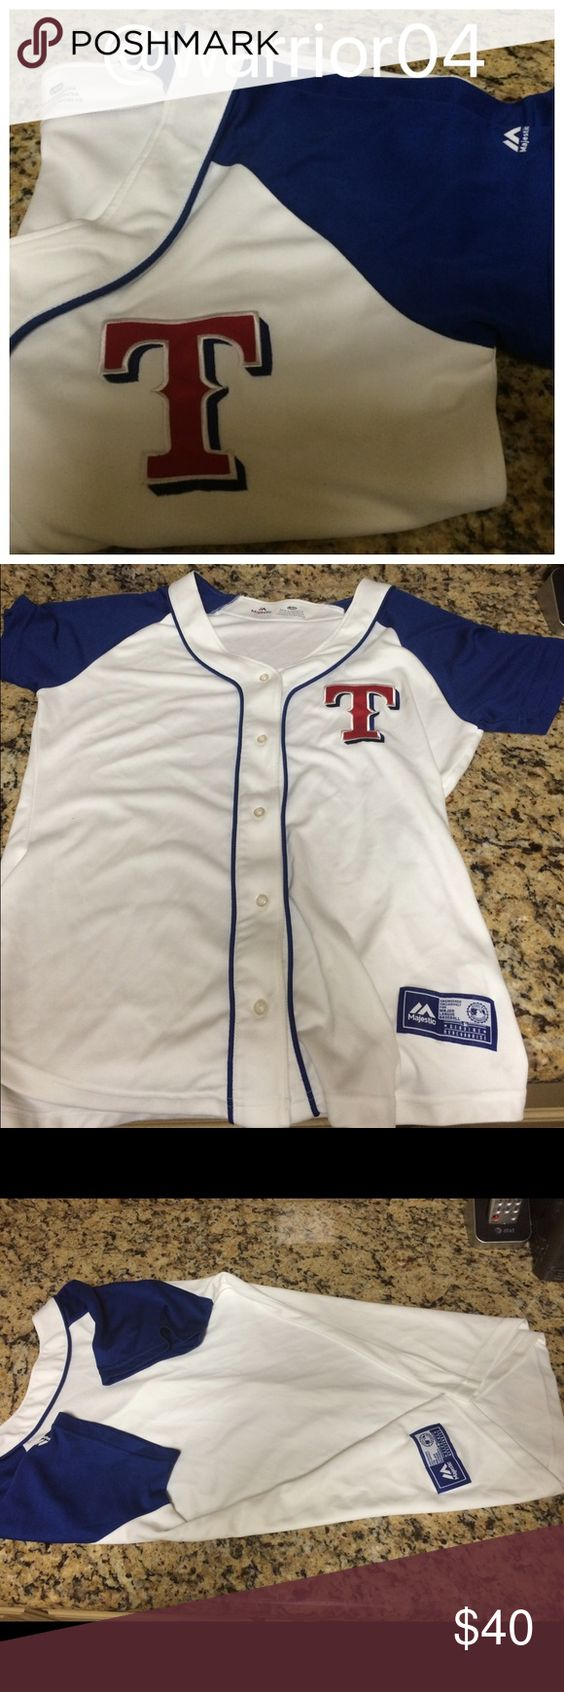 Majestic Texas Rangers Jersey Size Large Majestic Texas Rangers Jersey Size Large worn once to a Texas Rangers Suite, soft material colors are red white blue Majestic Tops